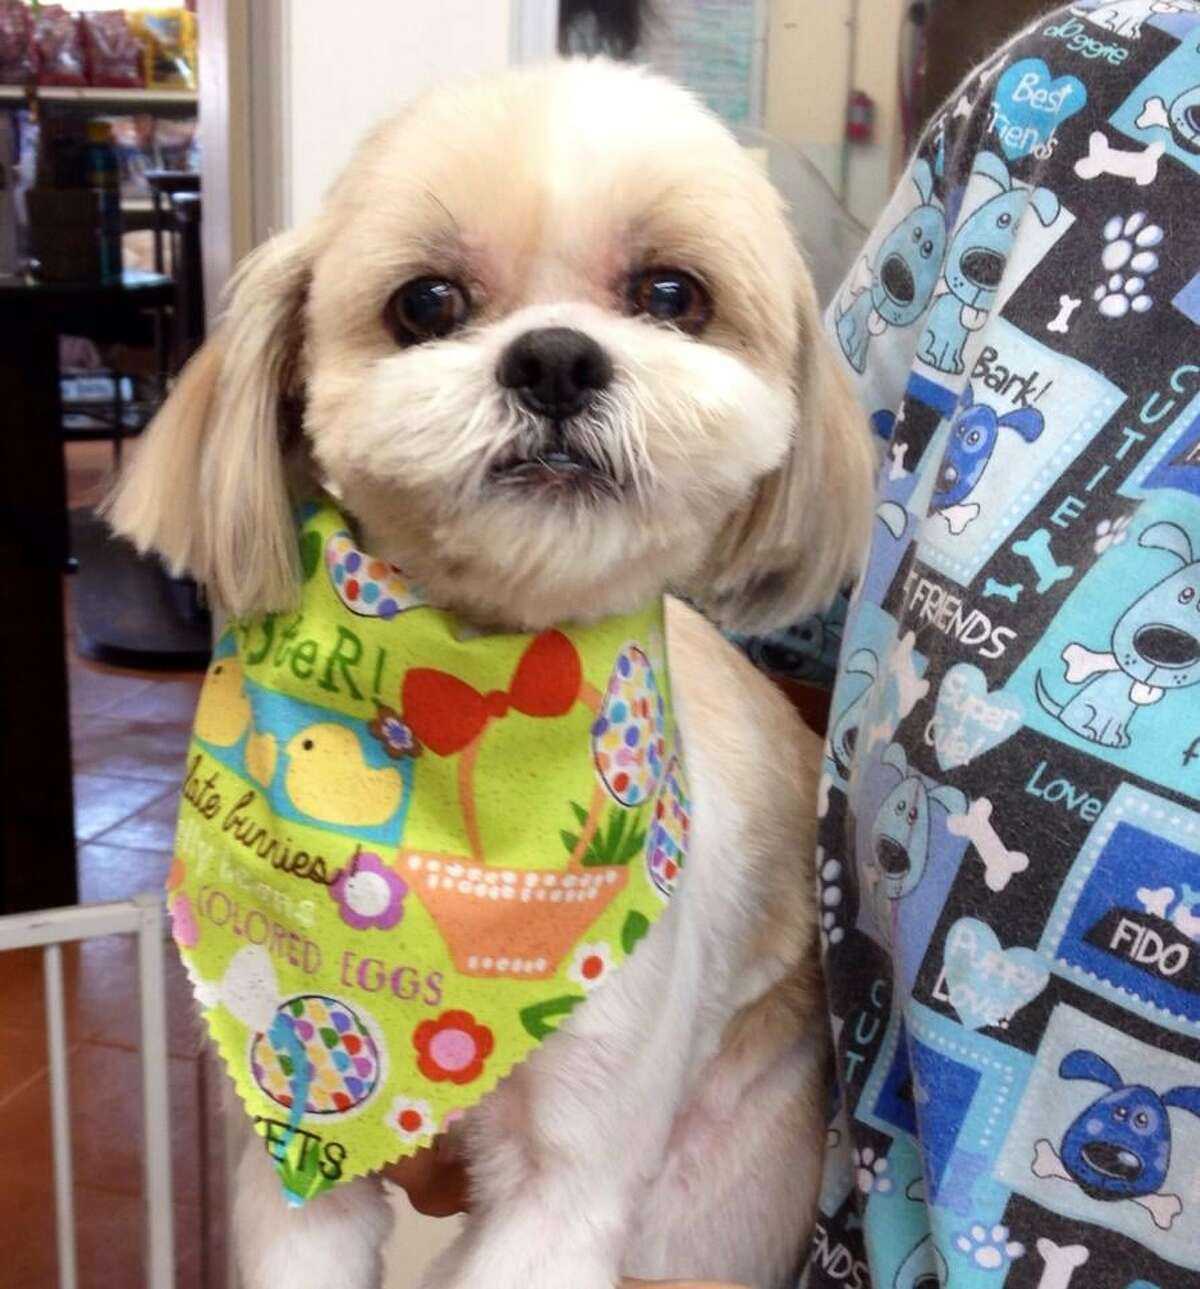 11:30 A.M. Give your pup a glow up atThe Dog House Pet Salonoff Richmond Avenue.The highly-rated pet sitting and grooming salon offers some fancy add-ons to over-indulge your pet, including doggy pedicures. Photo courtesy the Dog House Pet Salon/Yelp